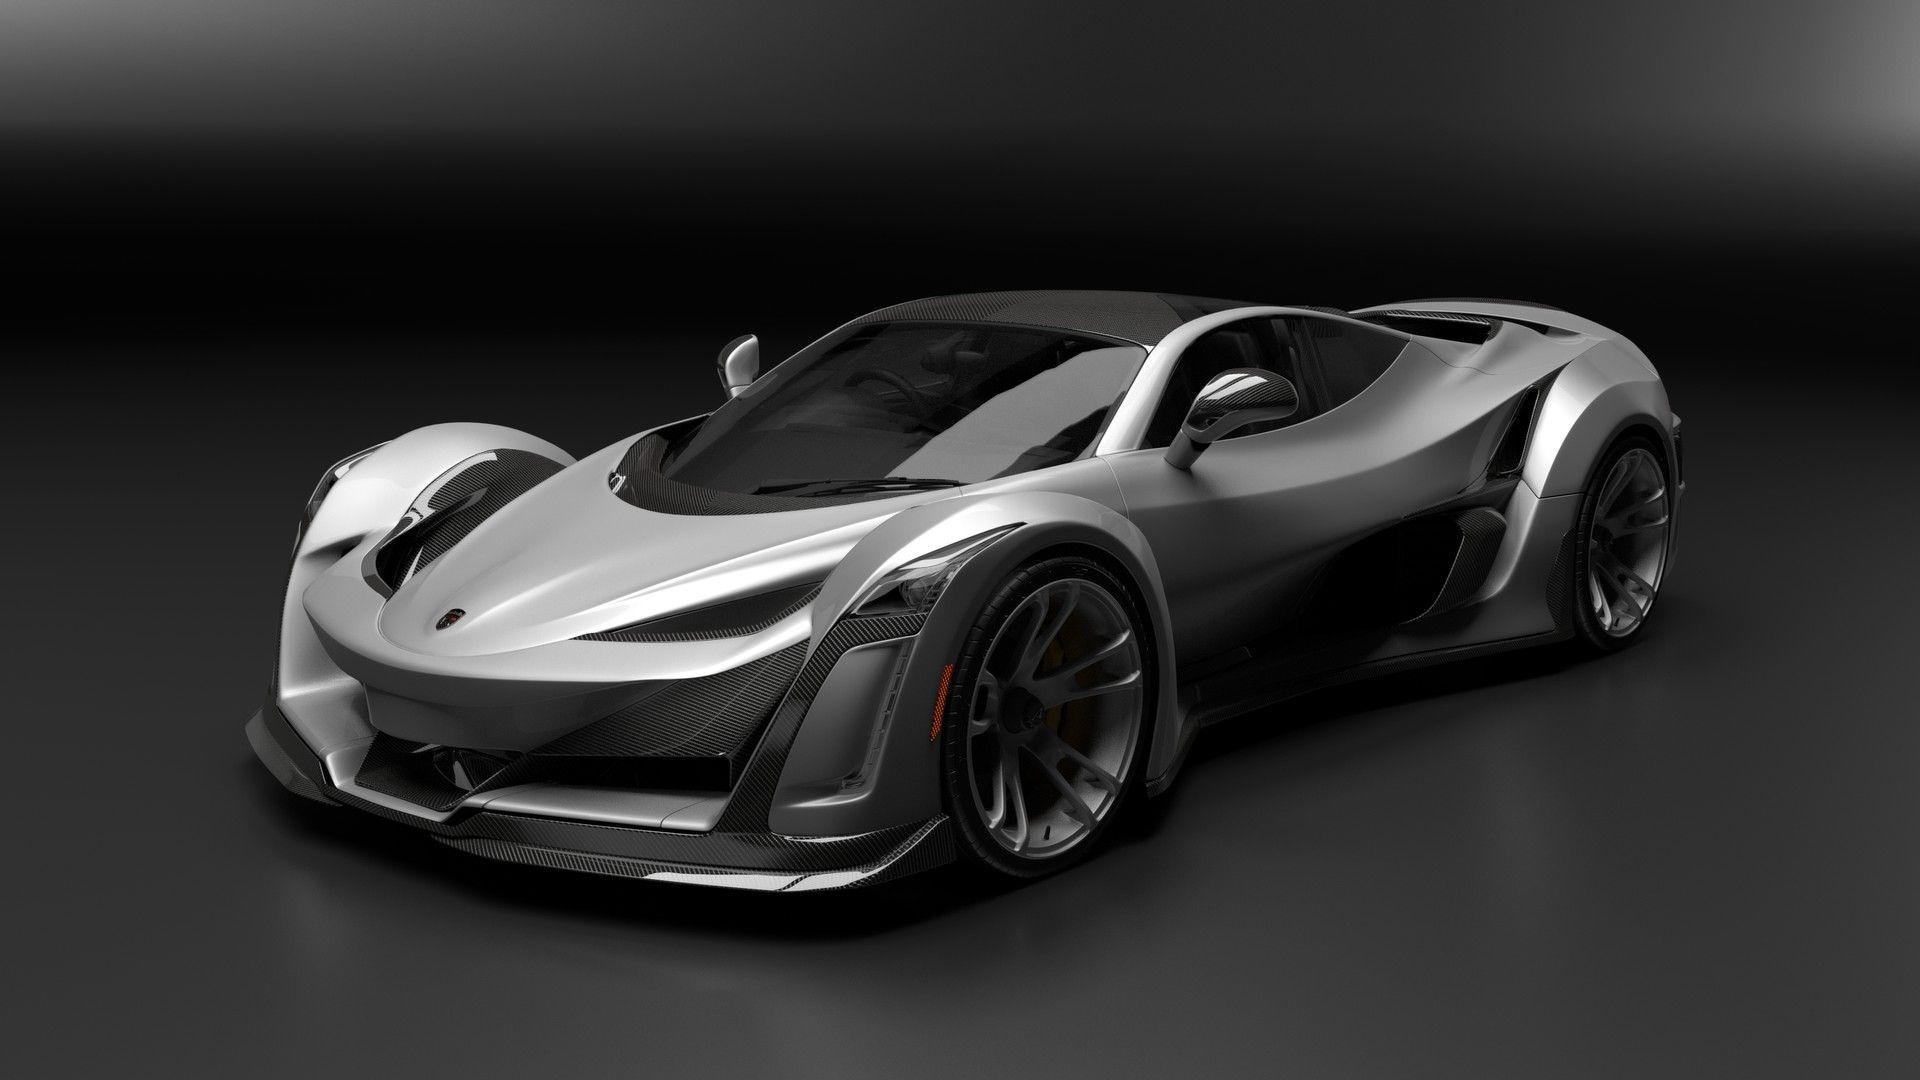 Super Cars For Sale >> Porsche-Powered Anibal Icon Is Canada's Crazy 920-HP Hypercar